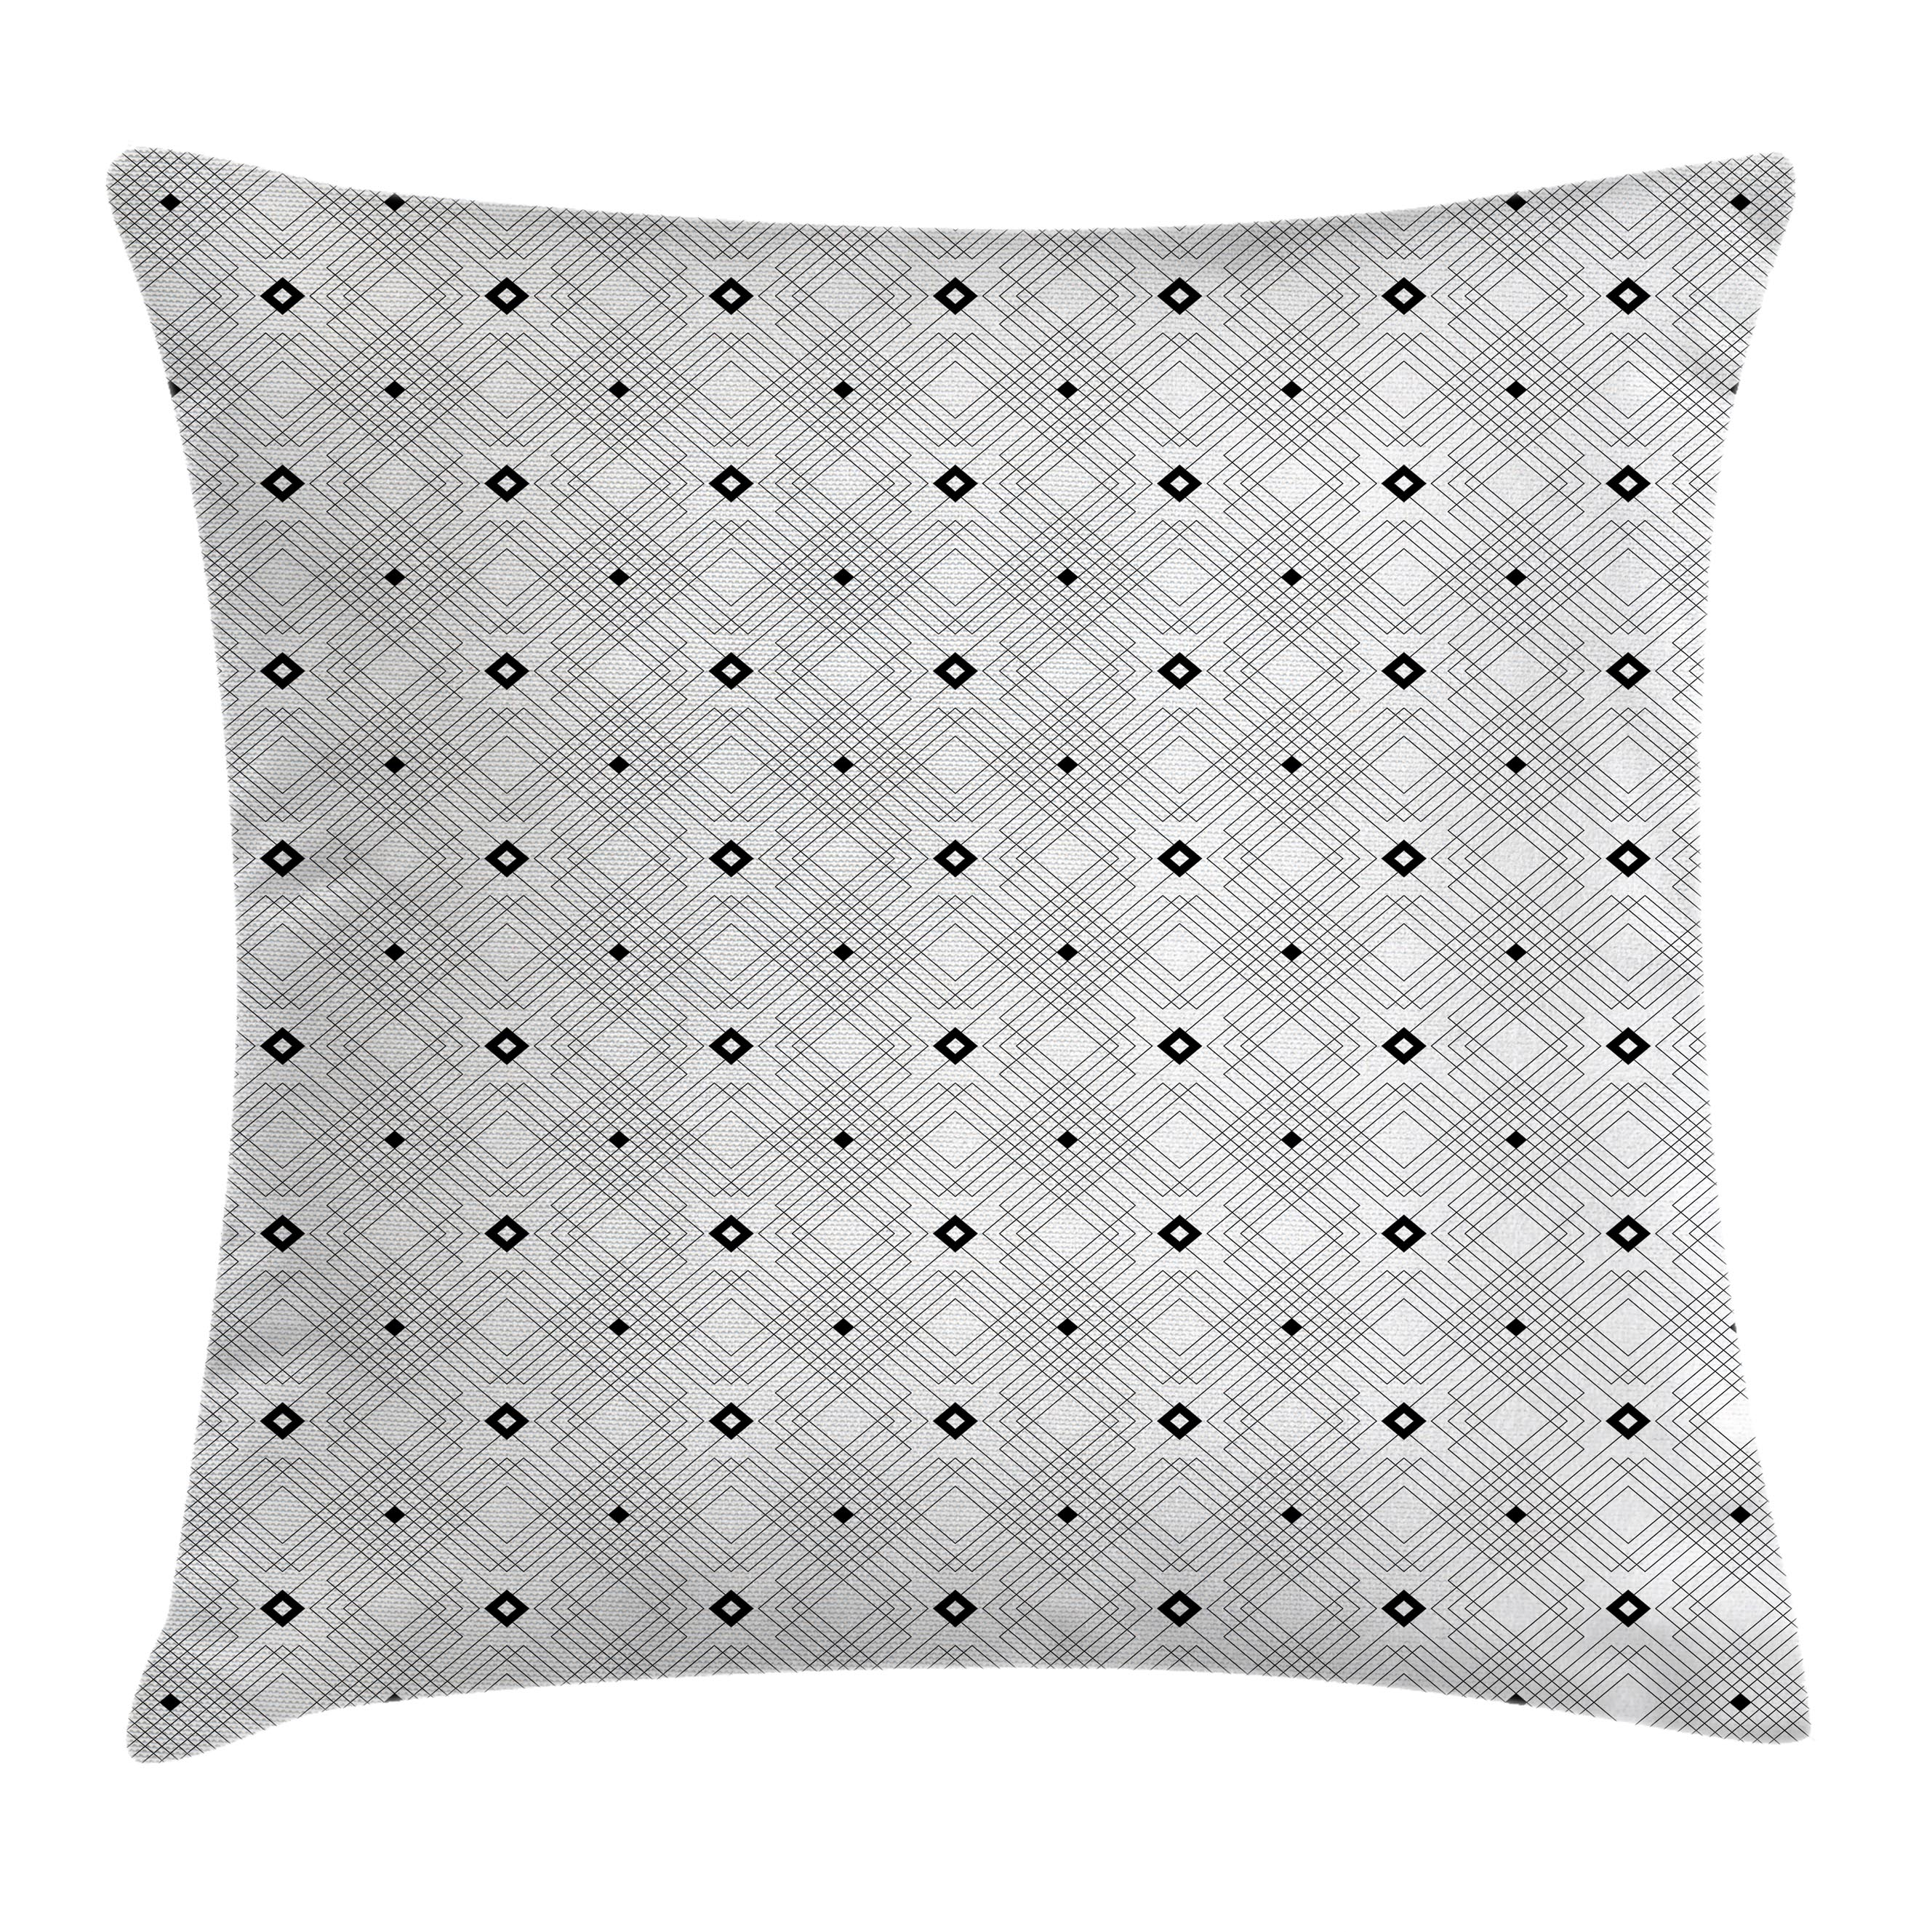 Black and White Throw Pillow Cushion Cover, Geometric Diagonal Squares and Stripe Forms Pattern Modern Style Design, Decorative Square Accent Pillow Case, 18 X 18 Inches, White Black, by Ambesonne